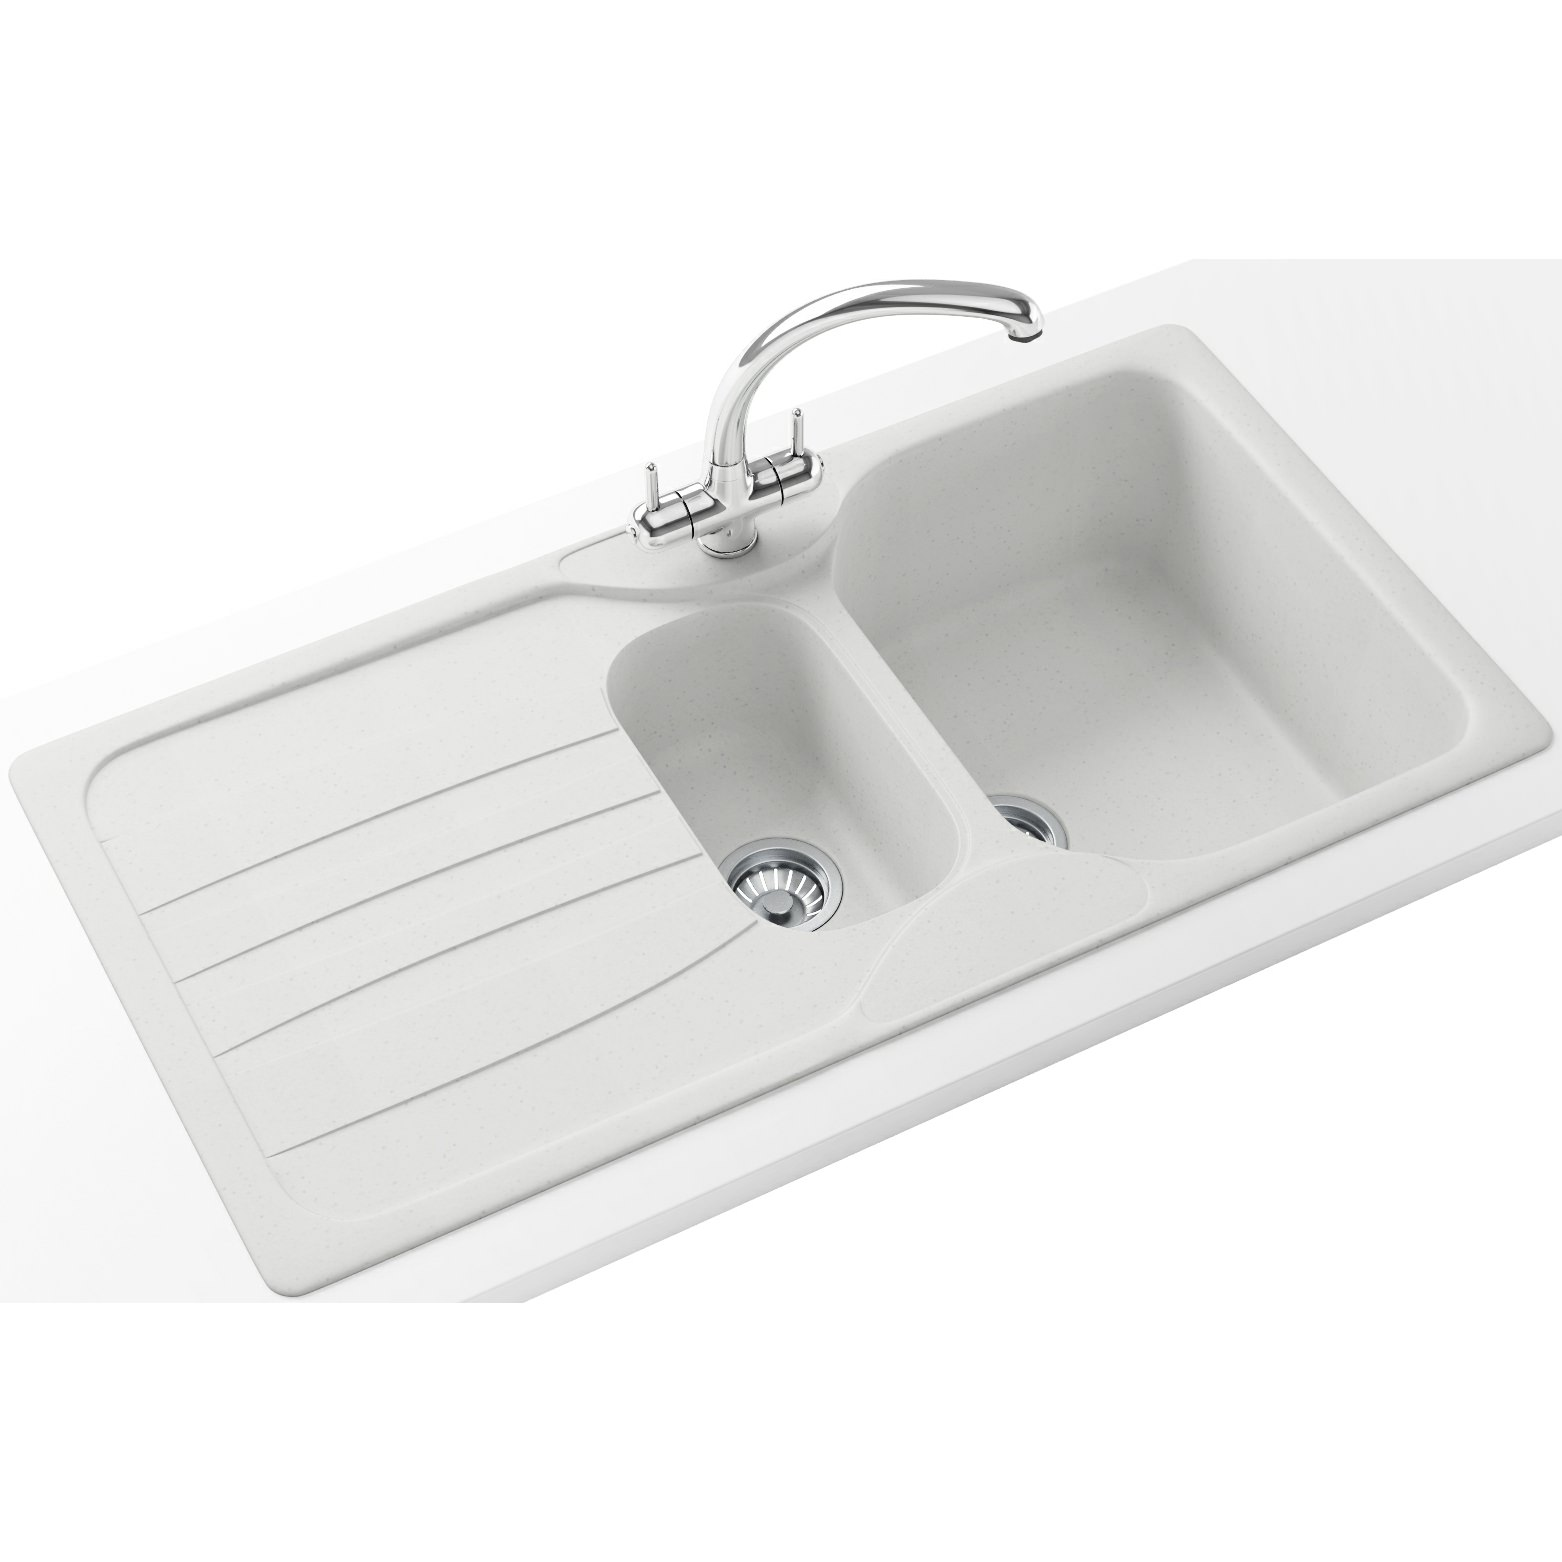 Franke Calypso Sink : Franke Calypso Propack COG 651 Fragranite Polar White Kitchen Sink And ...